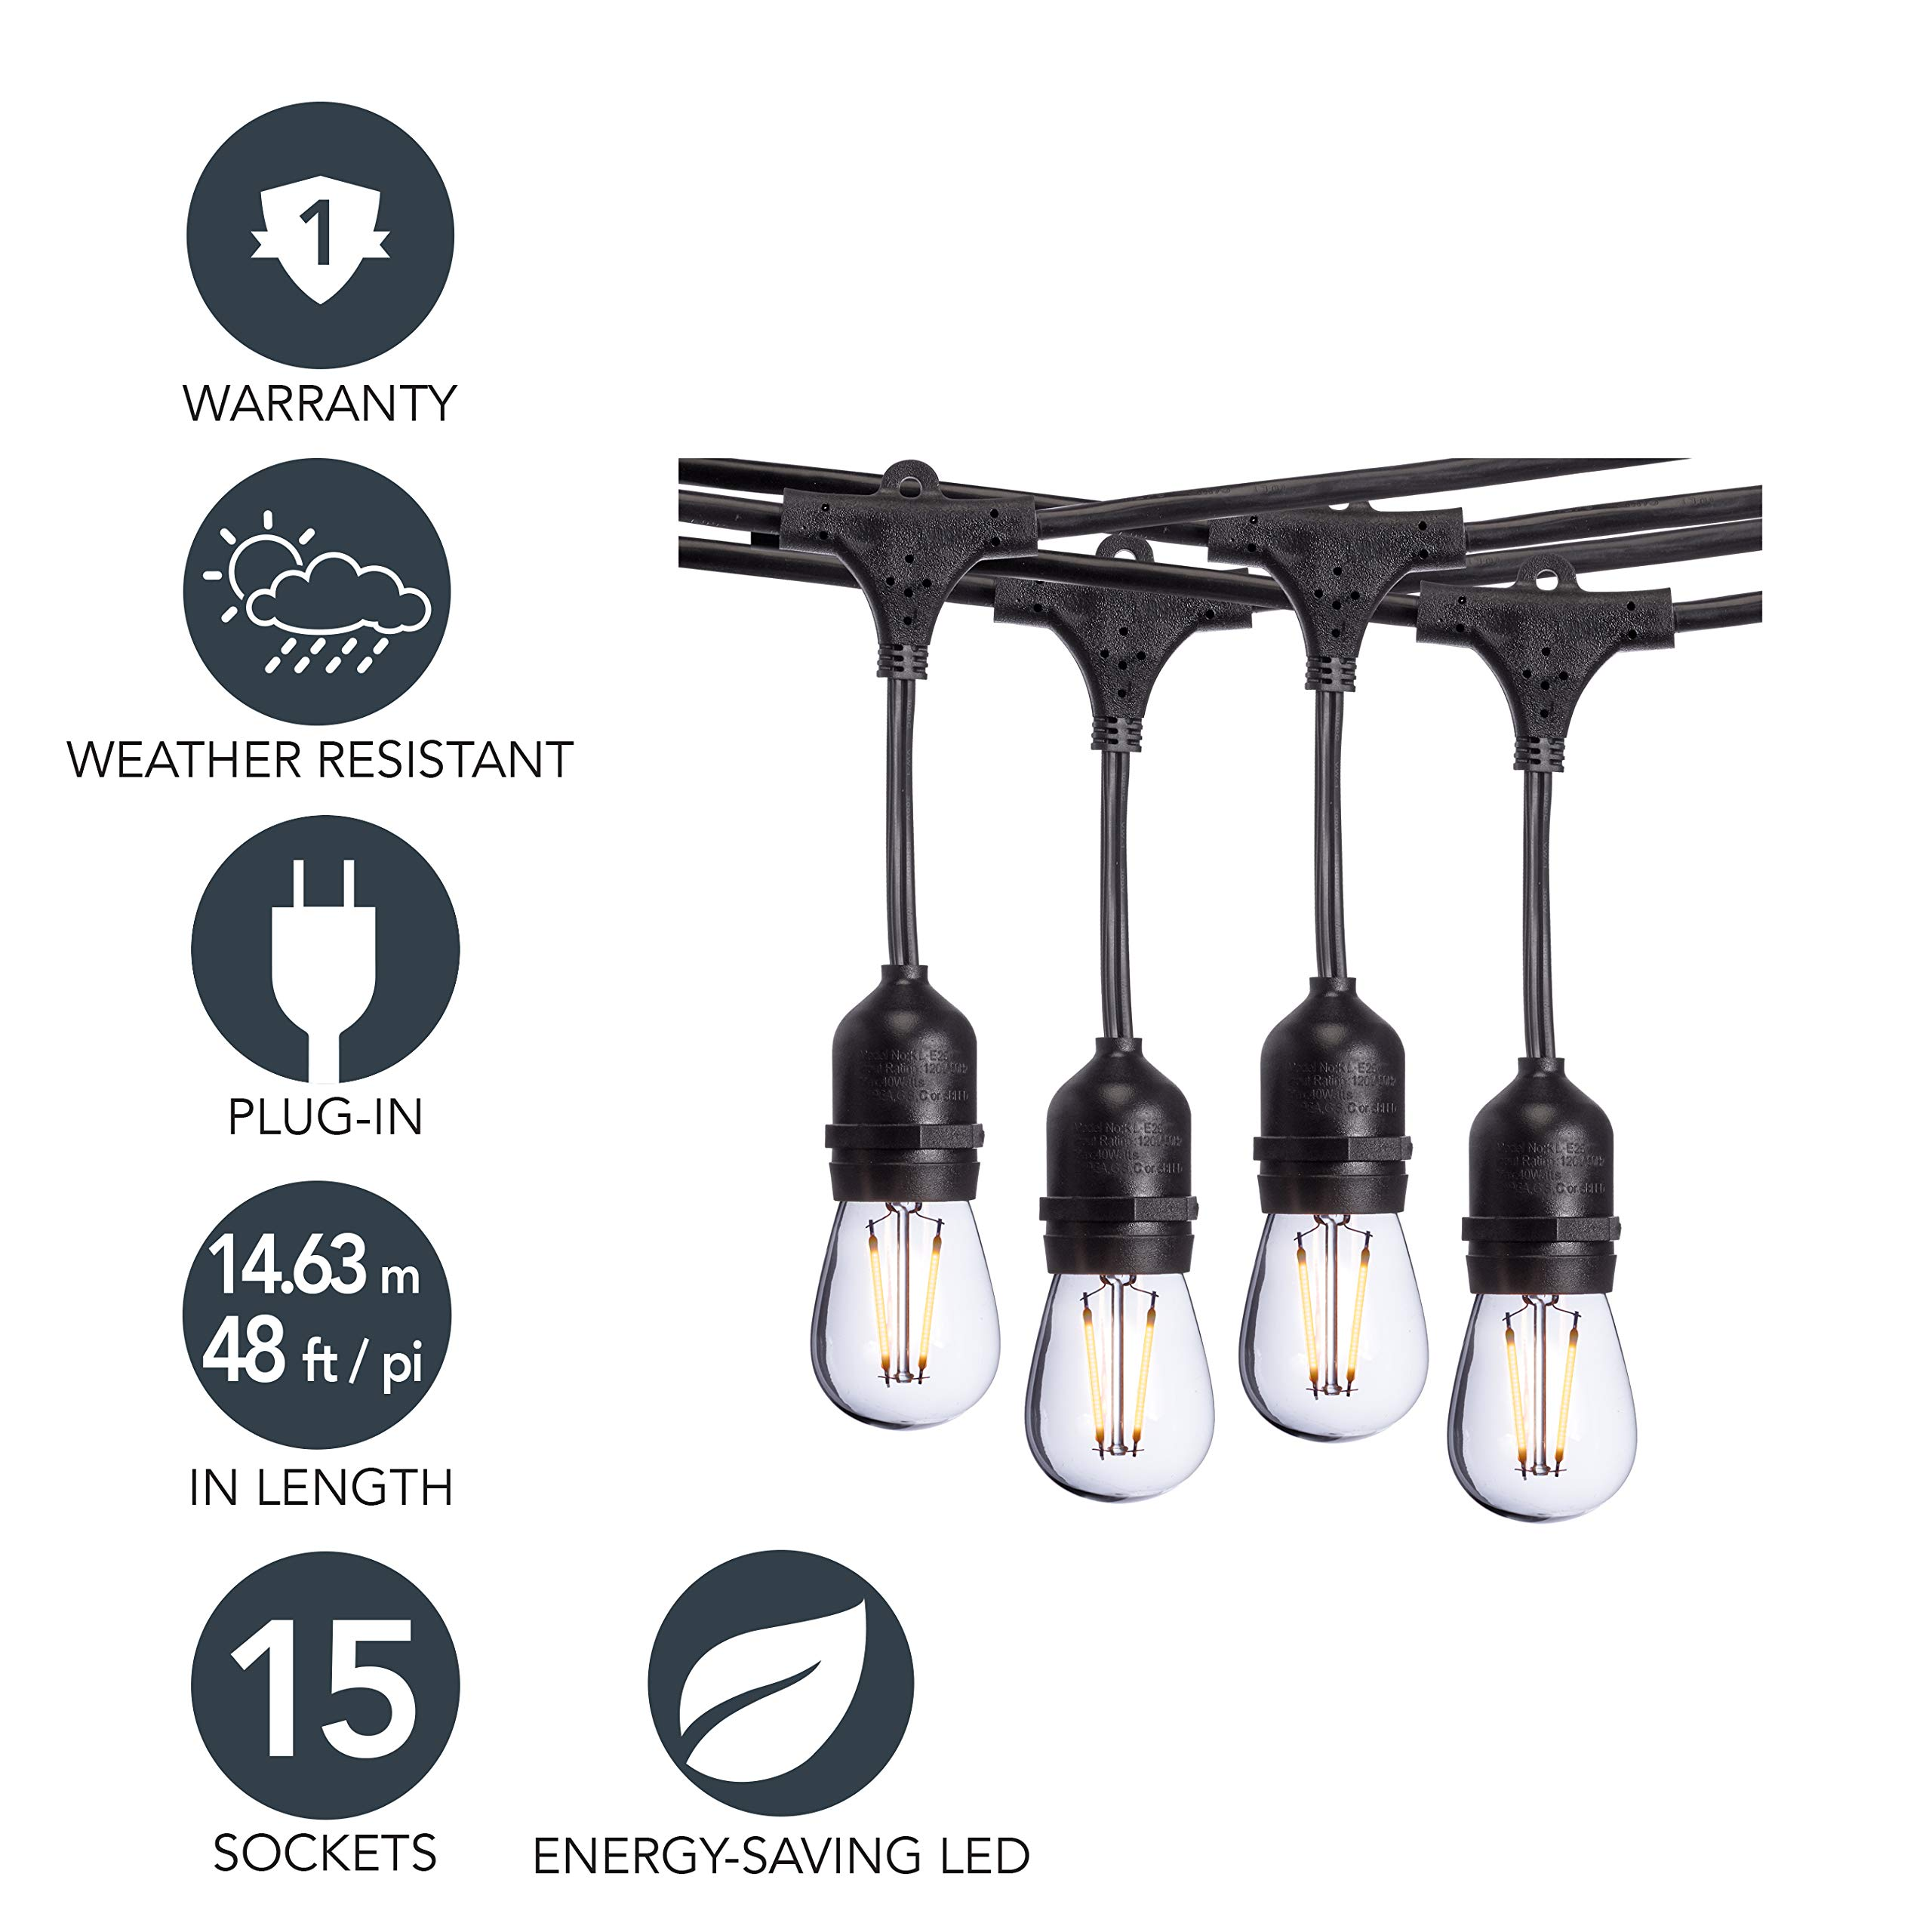 Sterno Home 48-Ft Vintage-Style Waterproof Outdoor LED String Lights - Hanging Edison Bulbs on Black Rubberized Cord - For Backyard, Weddings, Patio, Porch, and more.